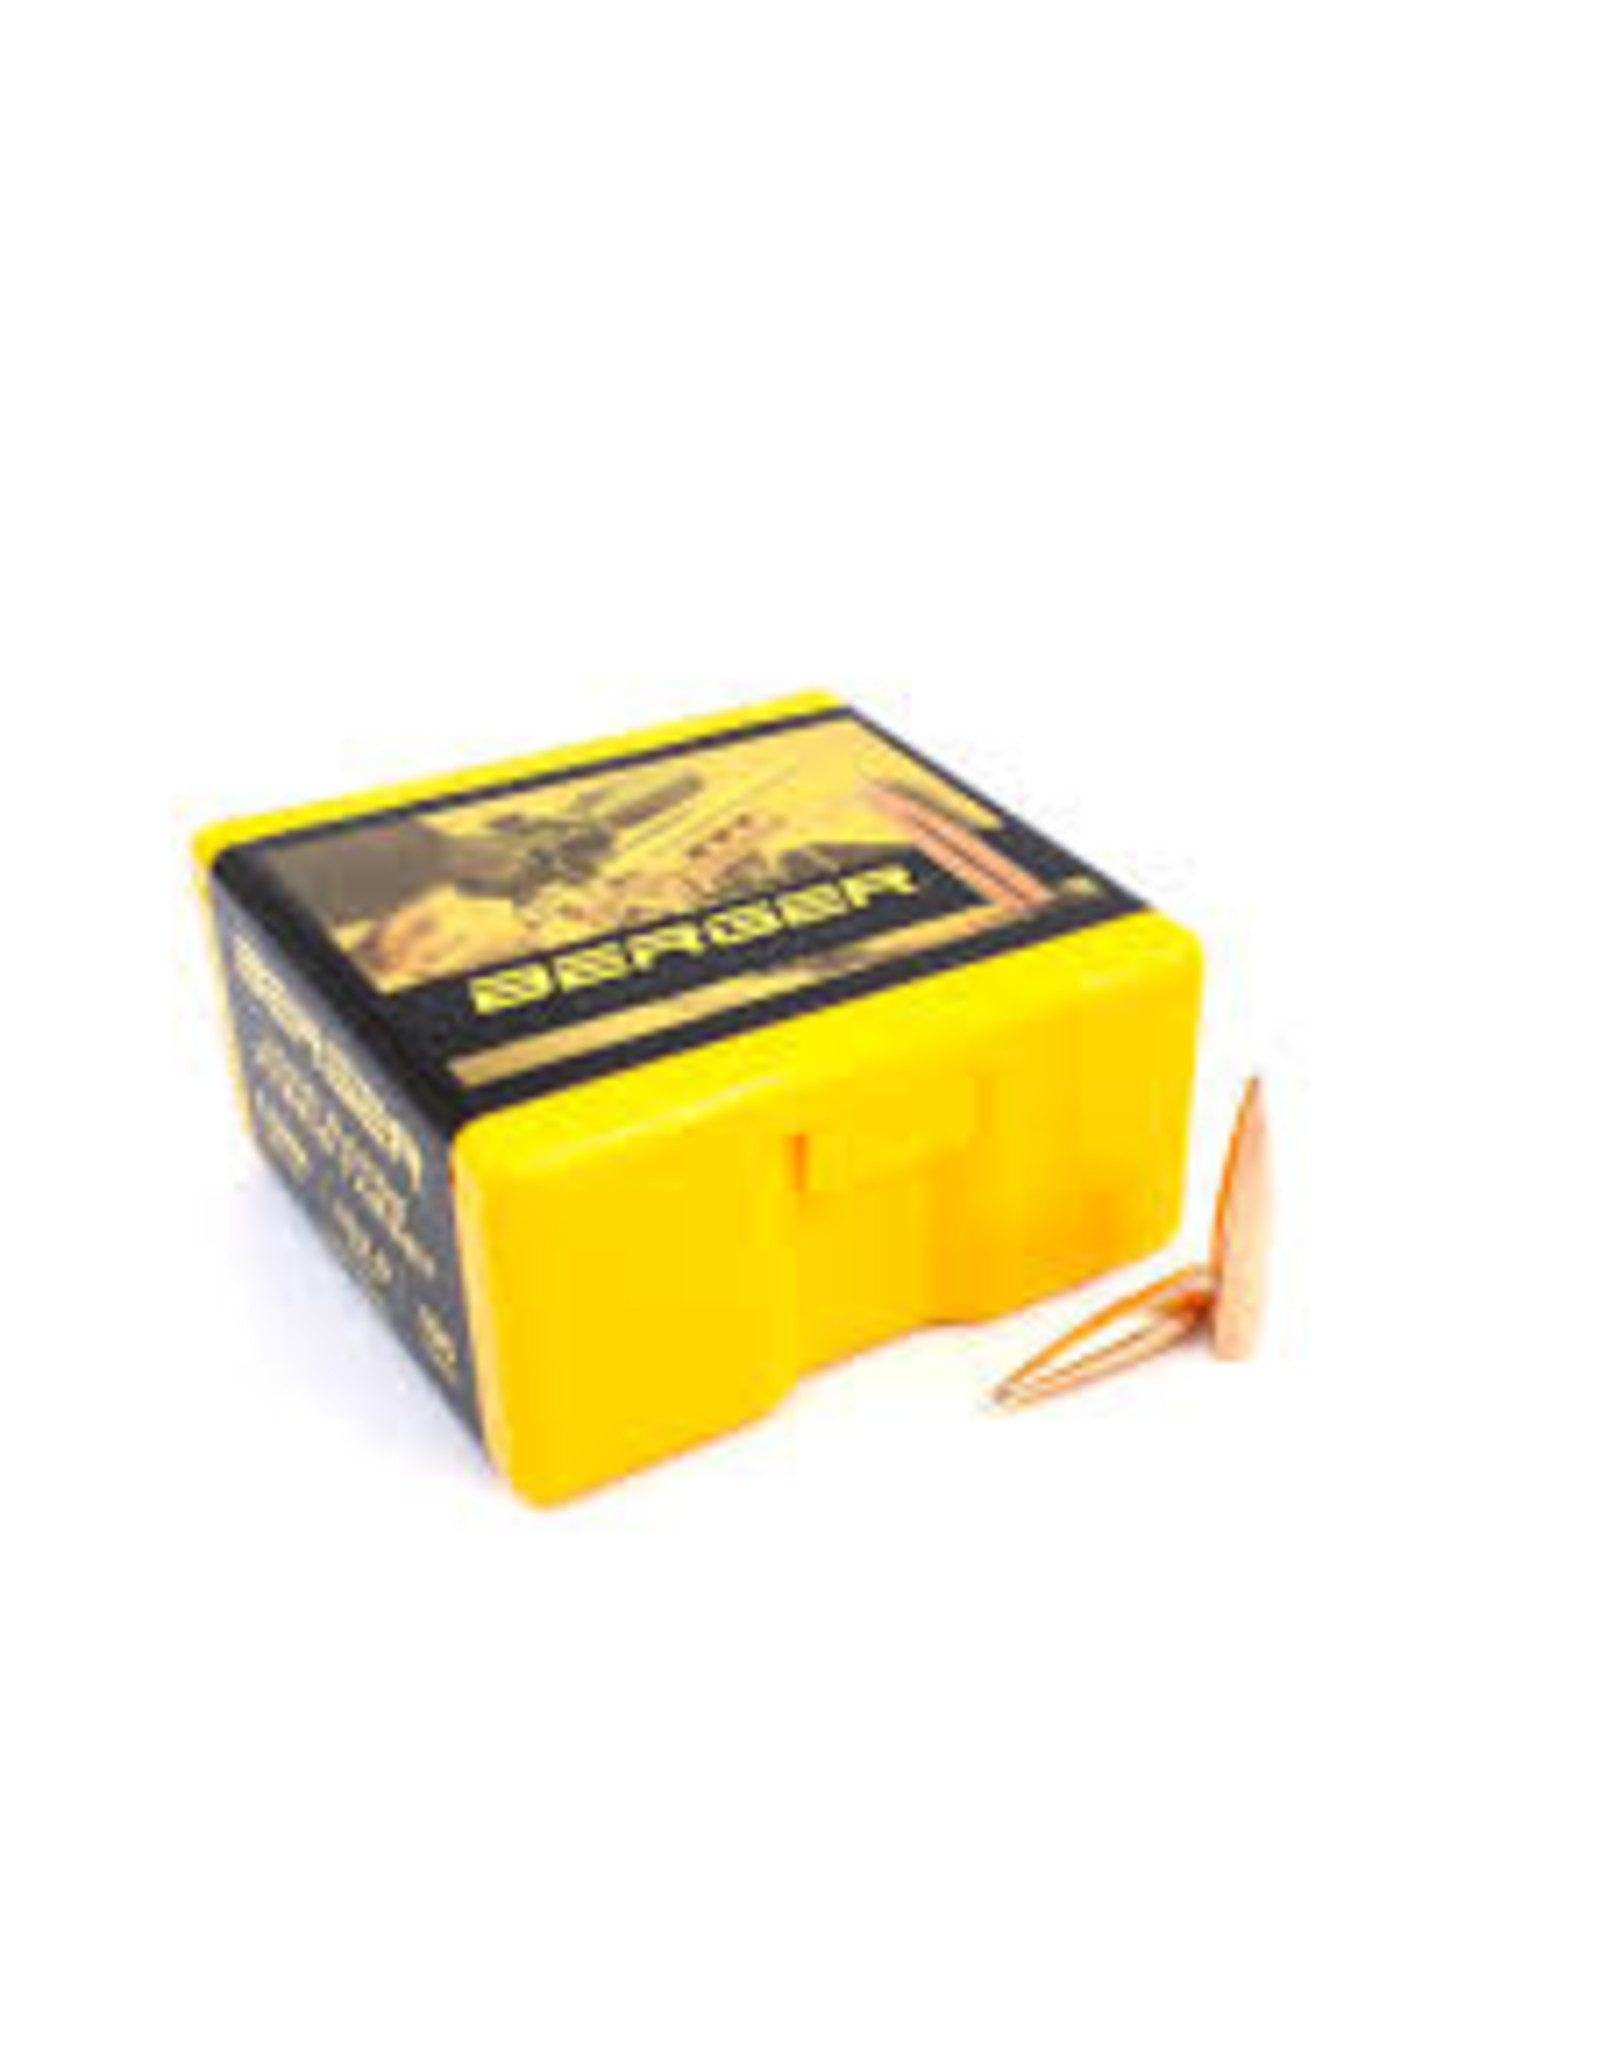 Berger Berger .244 DIA. 153.5GR LR 6.5mm 100ct